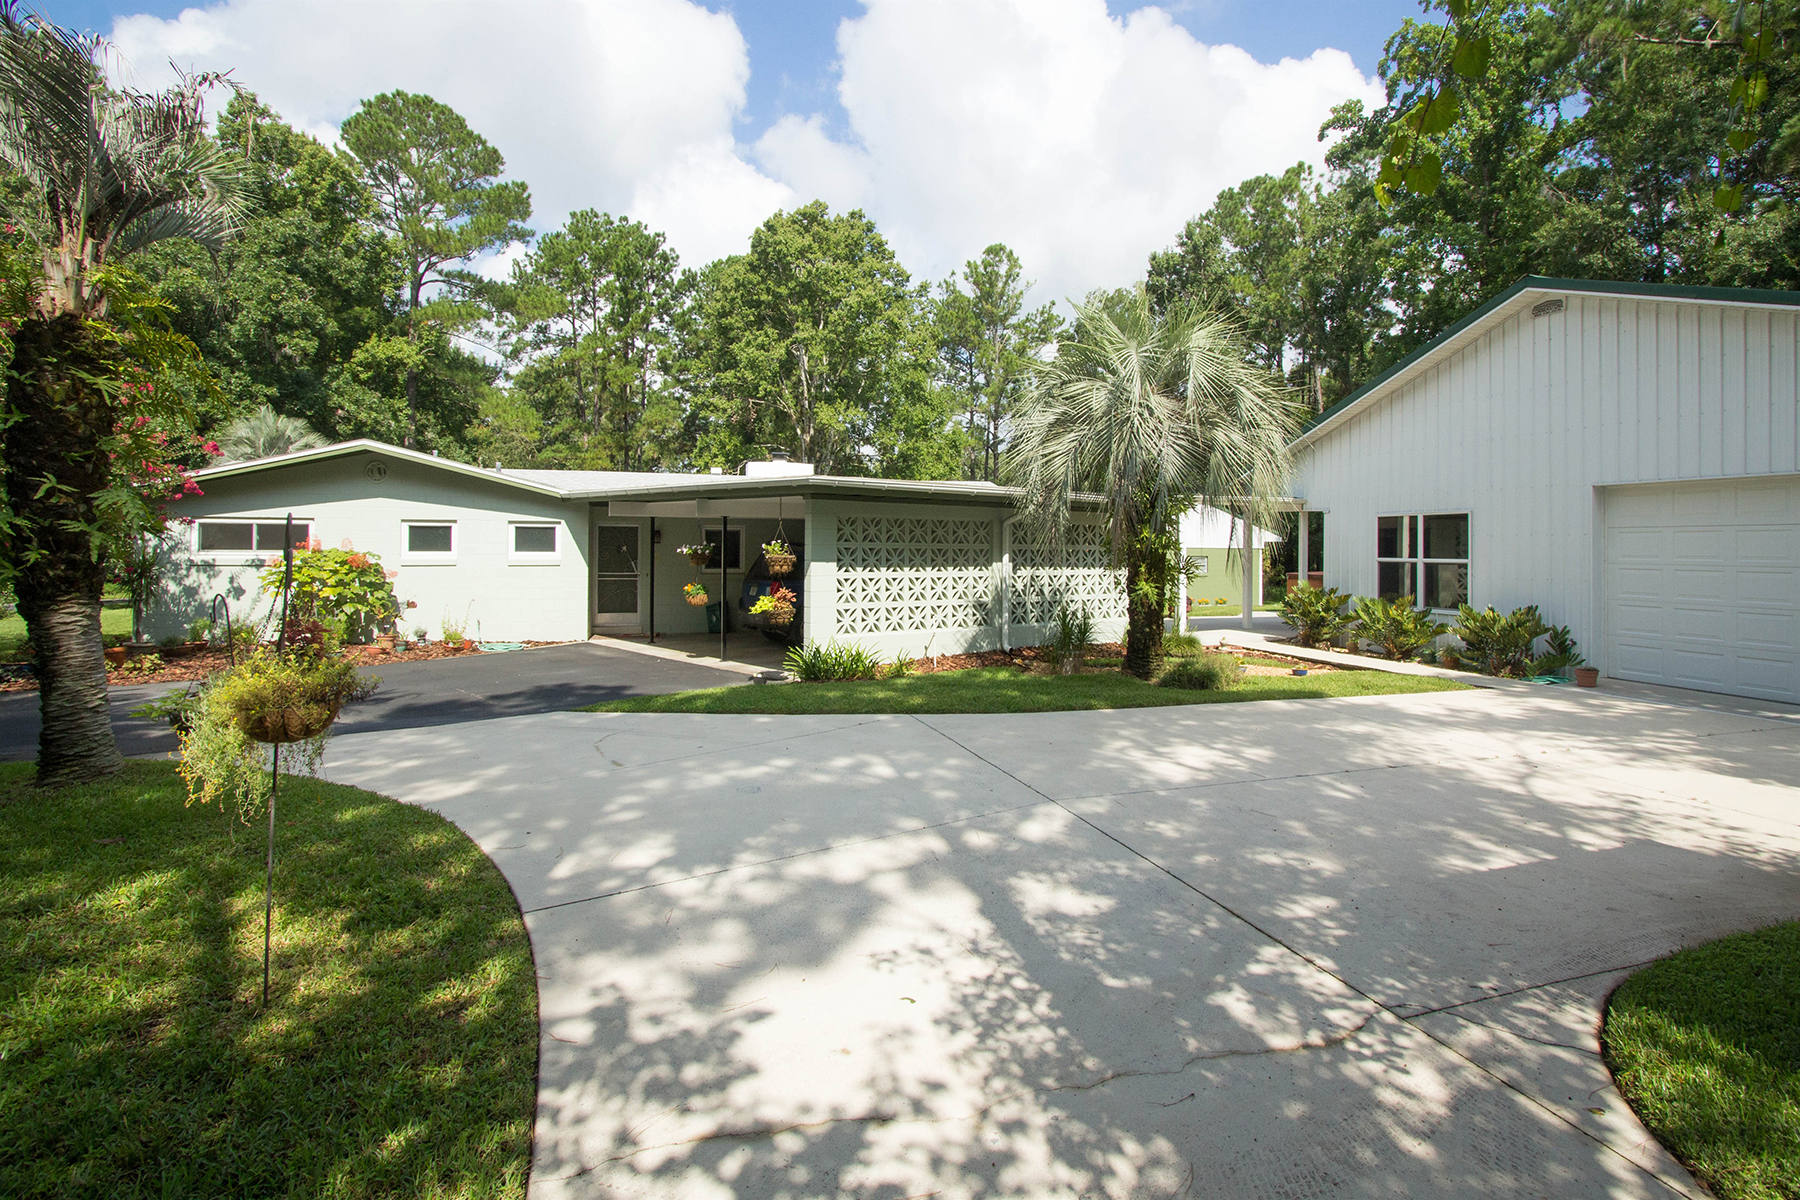 Single Family Home for Sale at ORLANDO - LONGWOOD 237 Michael Dr Longwood, Florida 32779 United States